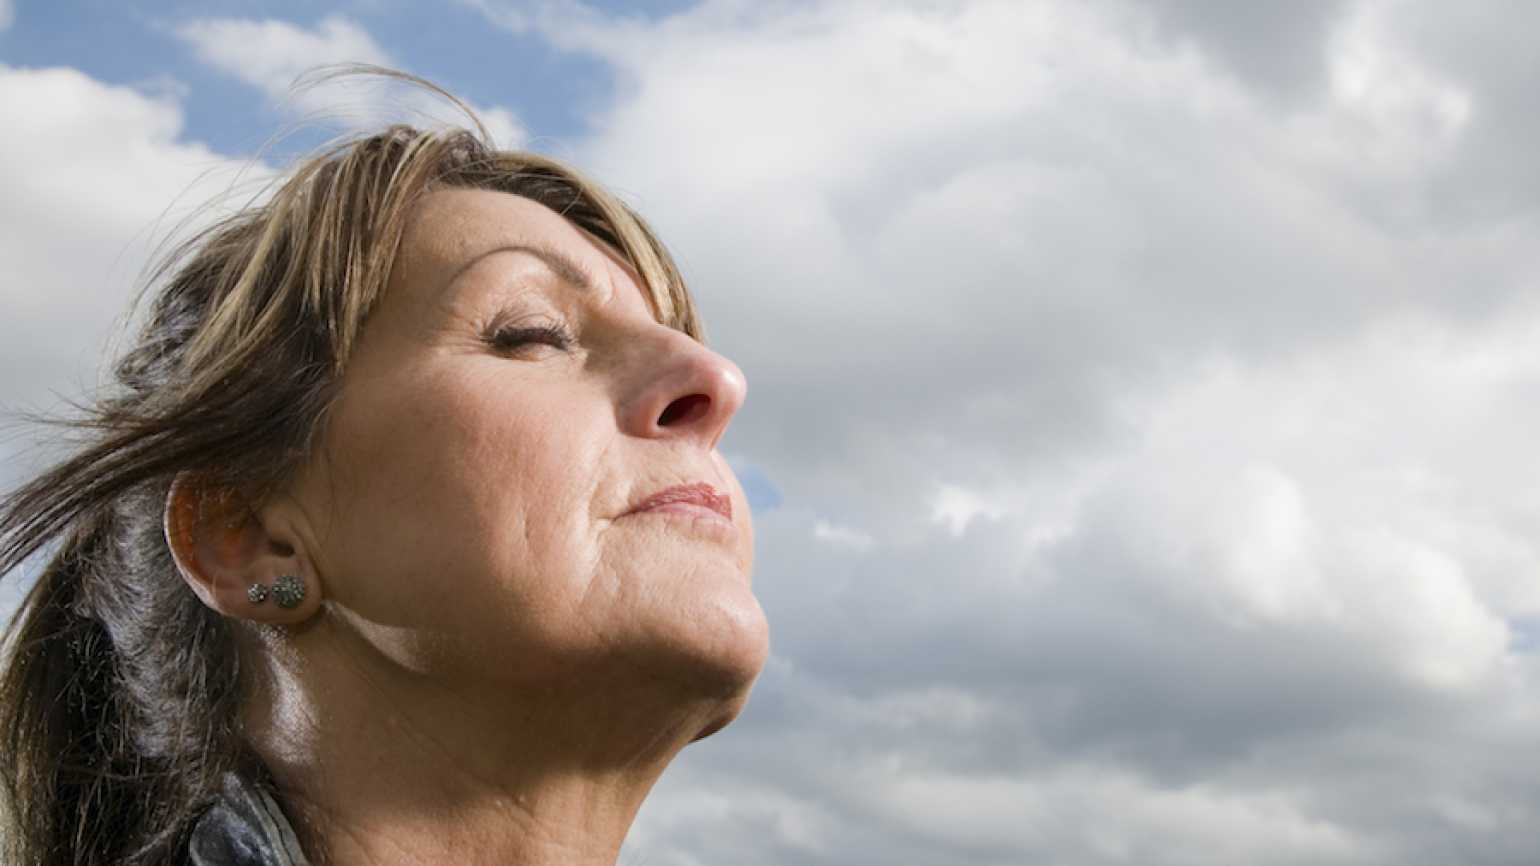 Woman being still, with eyes closed. Thinkstock.